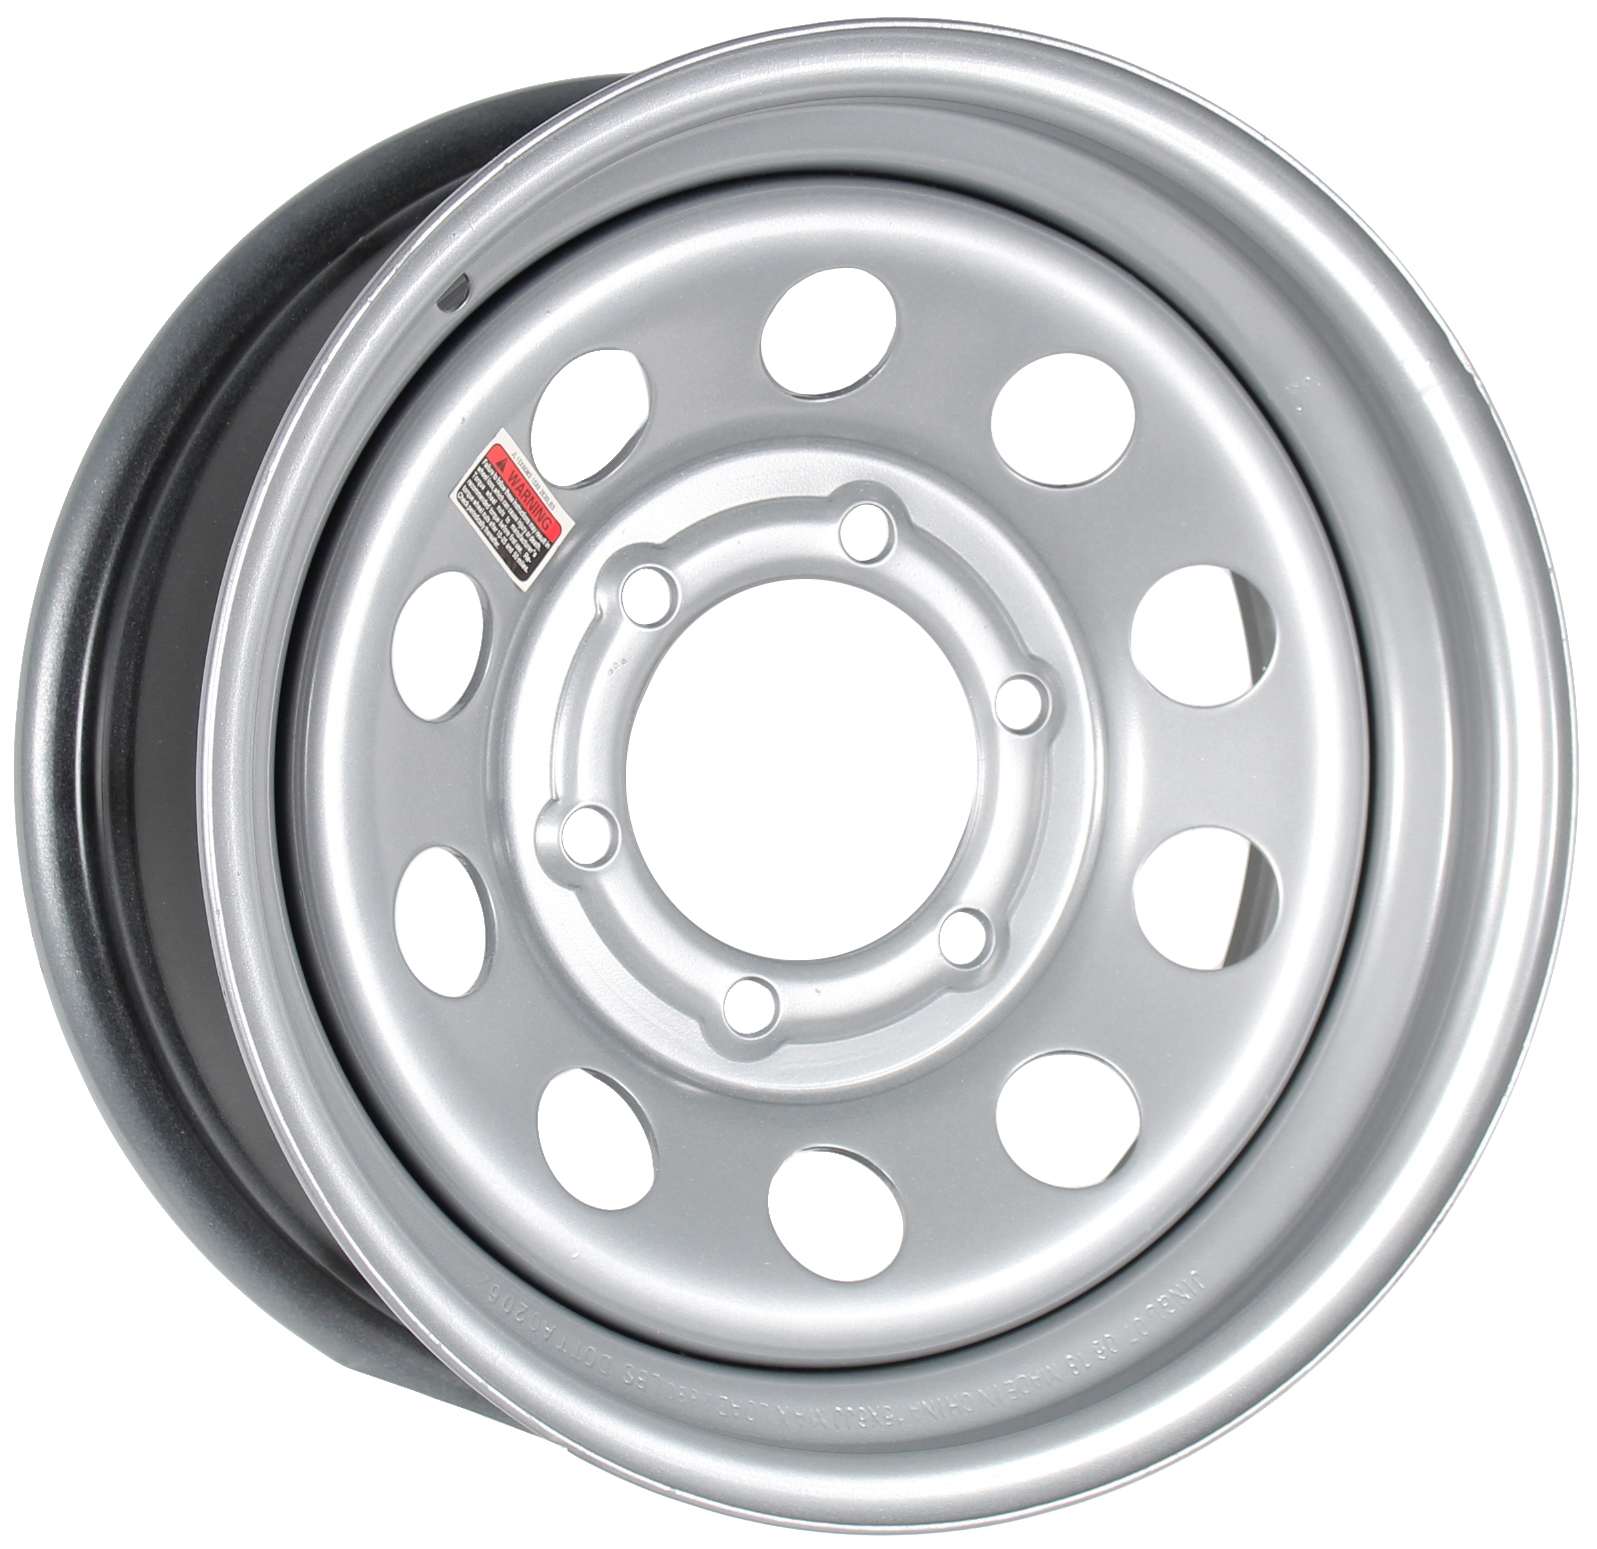 15x6 6-5.5 Silver Mod Steel Trailer Wheel Image